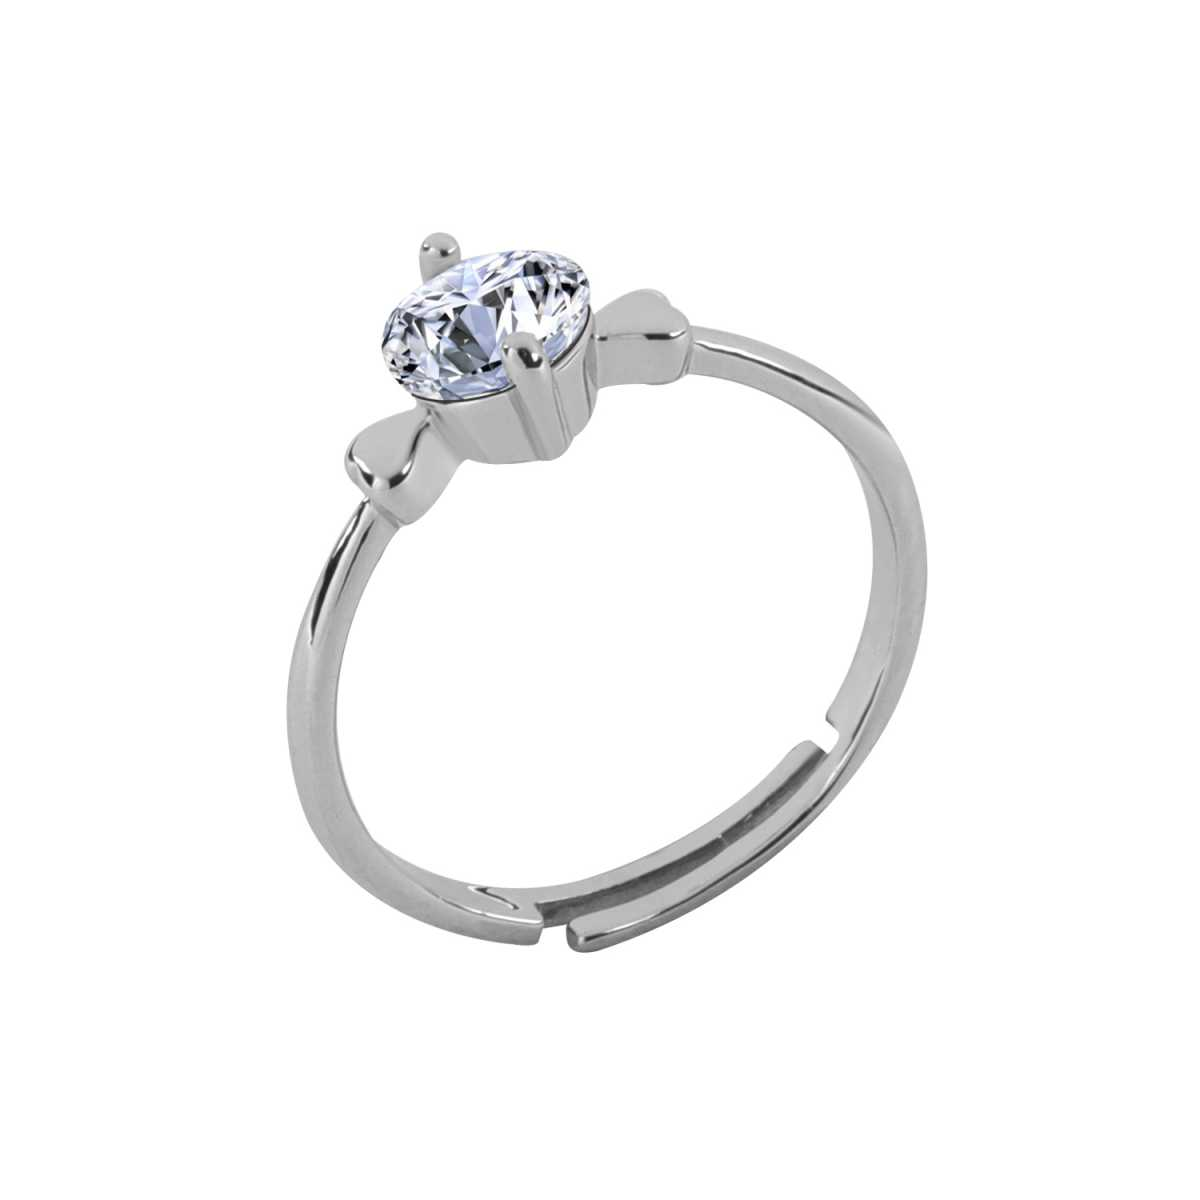 Silver Shine Silver Plated Elegant Classic Crystal Adjustable Solitaire Ring for Girls and women,wedding ring,jewelry,diamonds,fashion jewelry,couple rings silver .